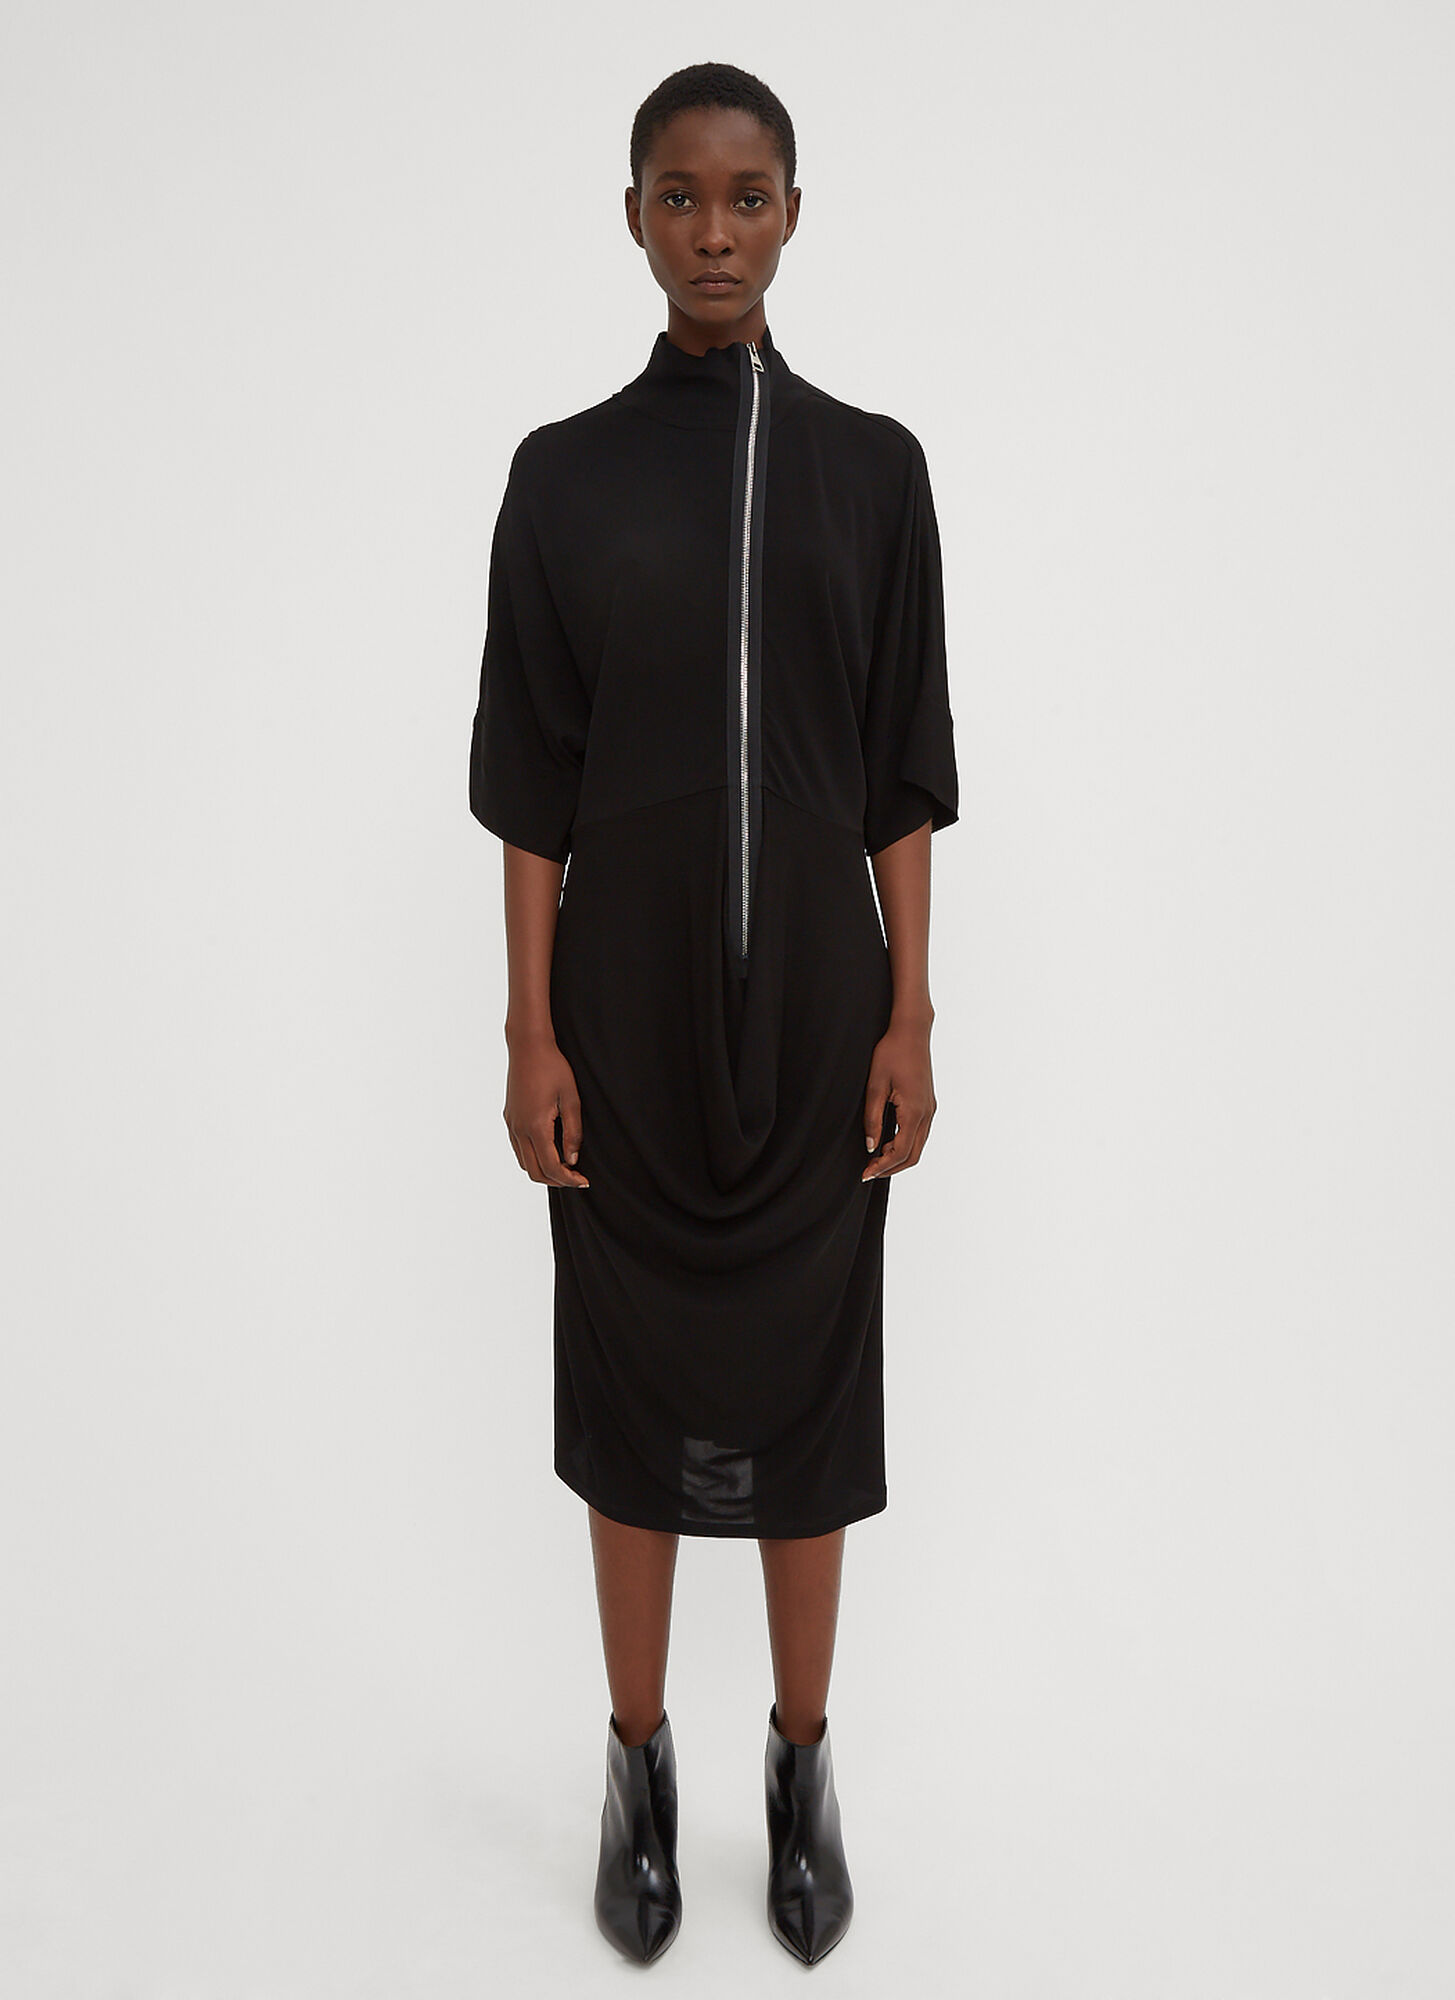 JW Anderson Draped Skirt Dress in Black